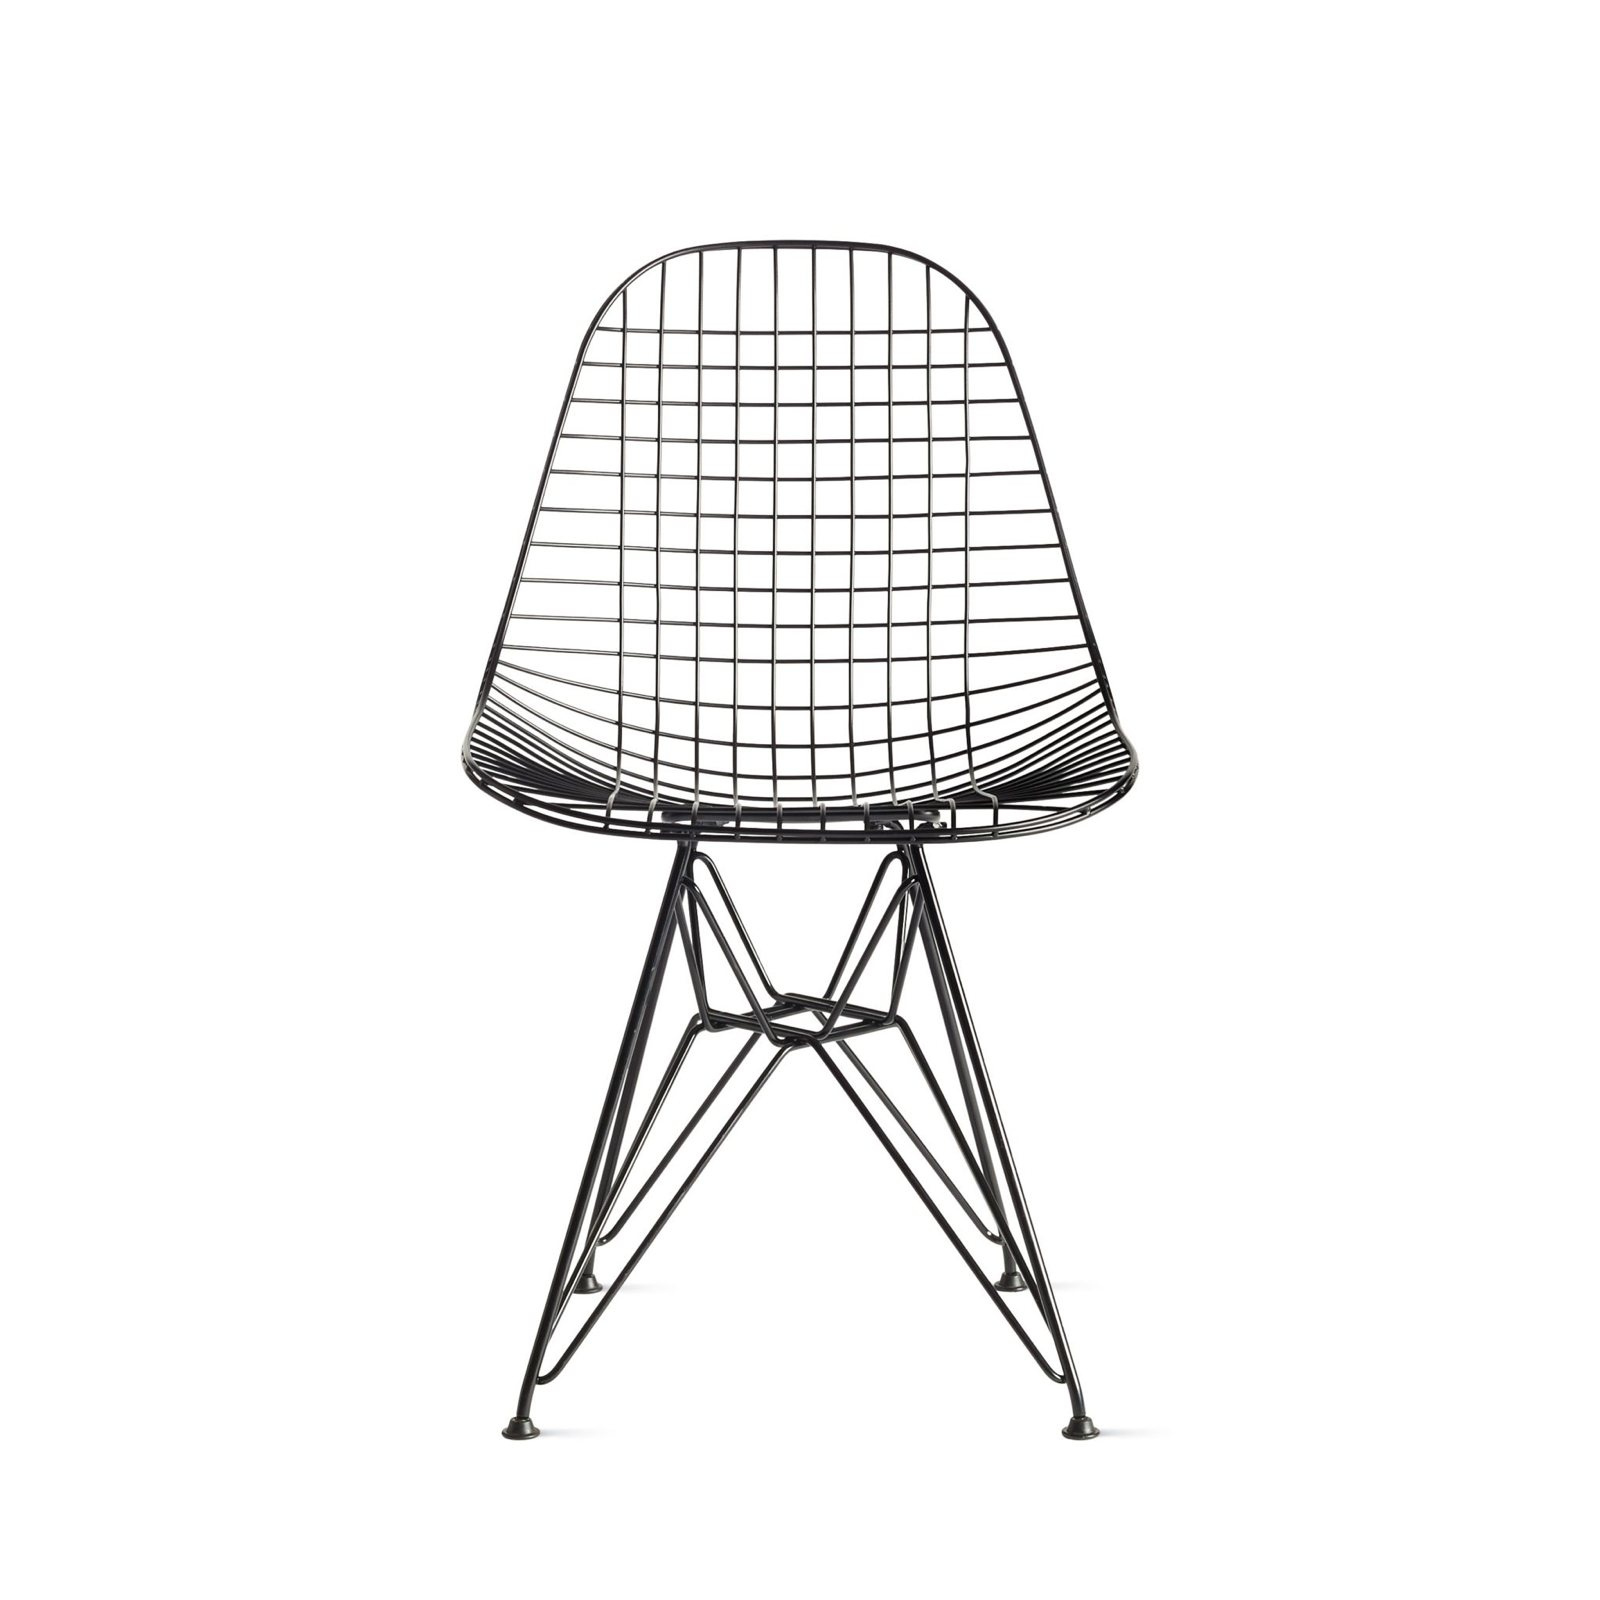 eames wire chair by charles ray eames for herman miller up interiors. Black Bedroom Furniture Sets. Home Design Ideas